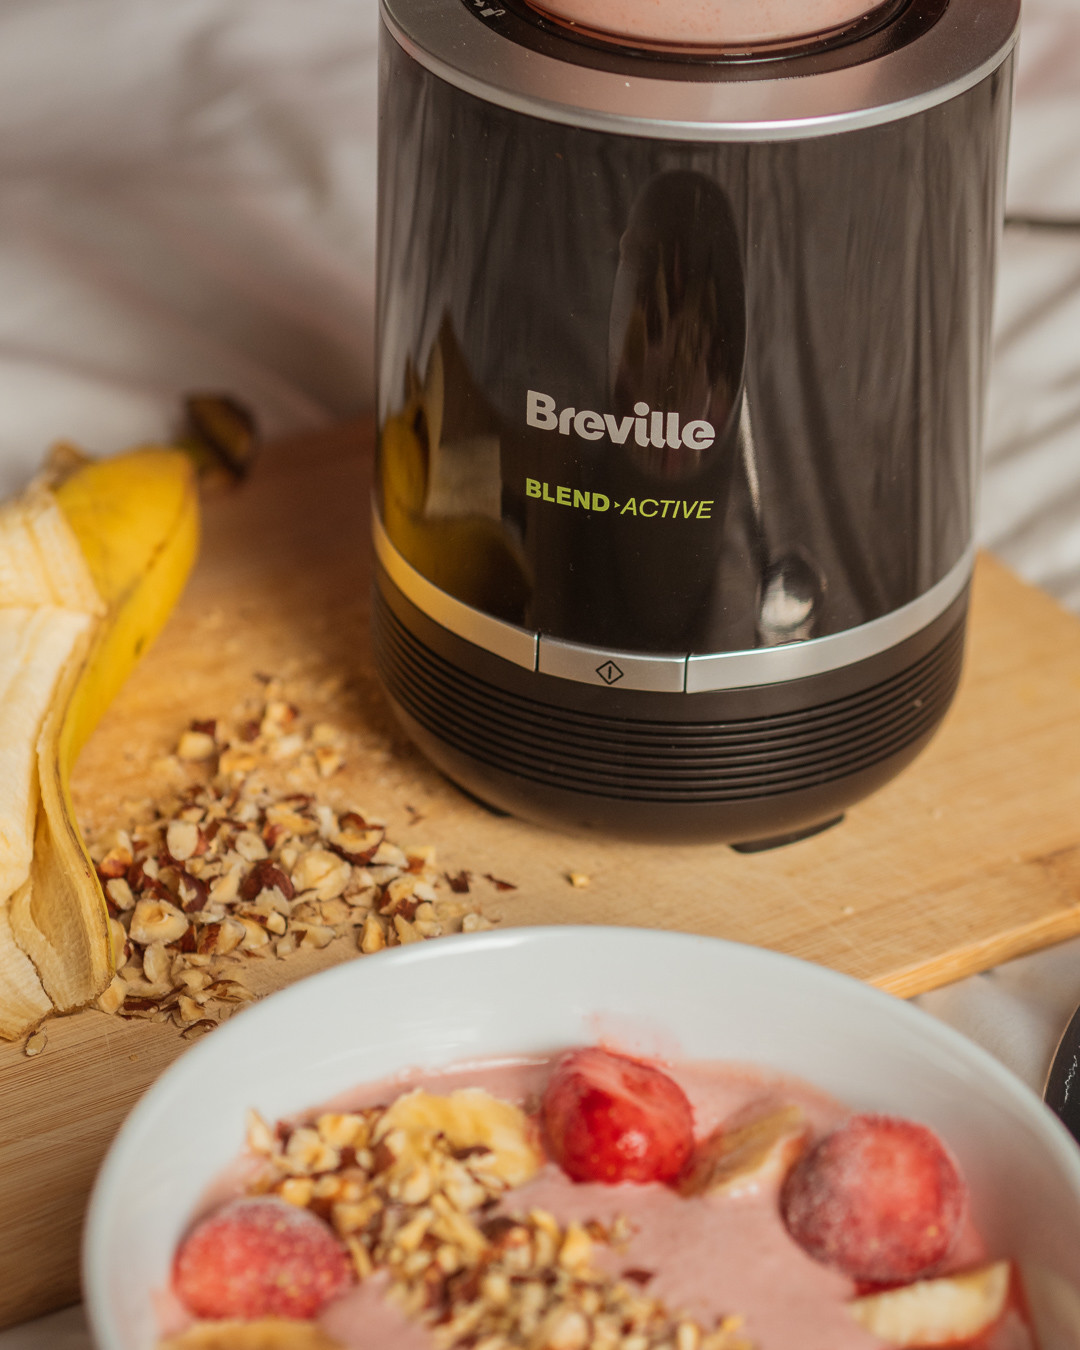 Breville peanut butter, strawberry and banana smoothie bowl